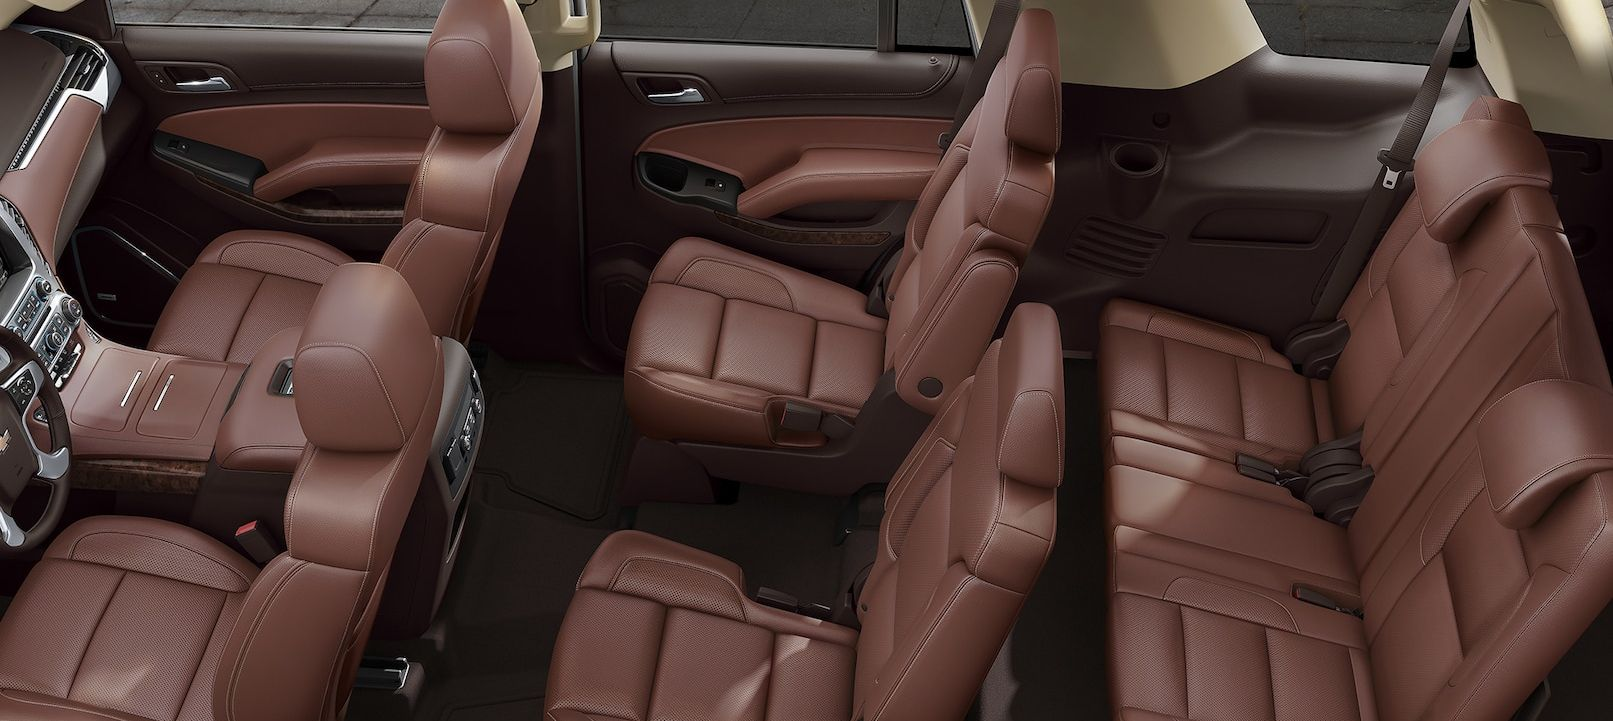 Upscale Interior of the Chevrolet Tahoe